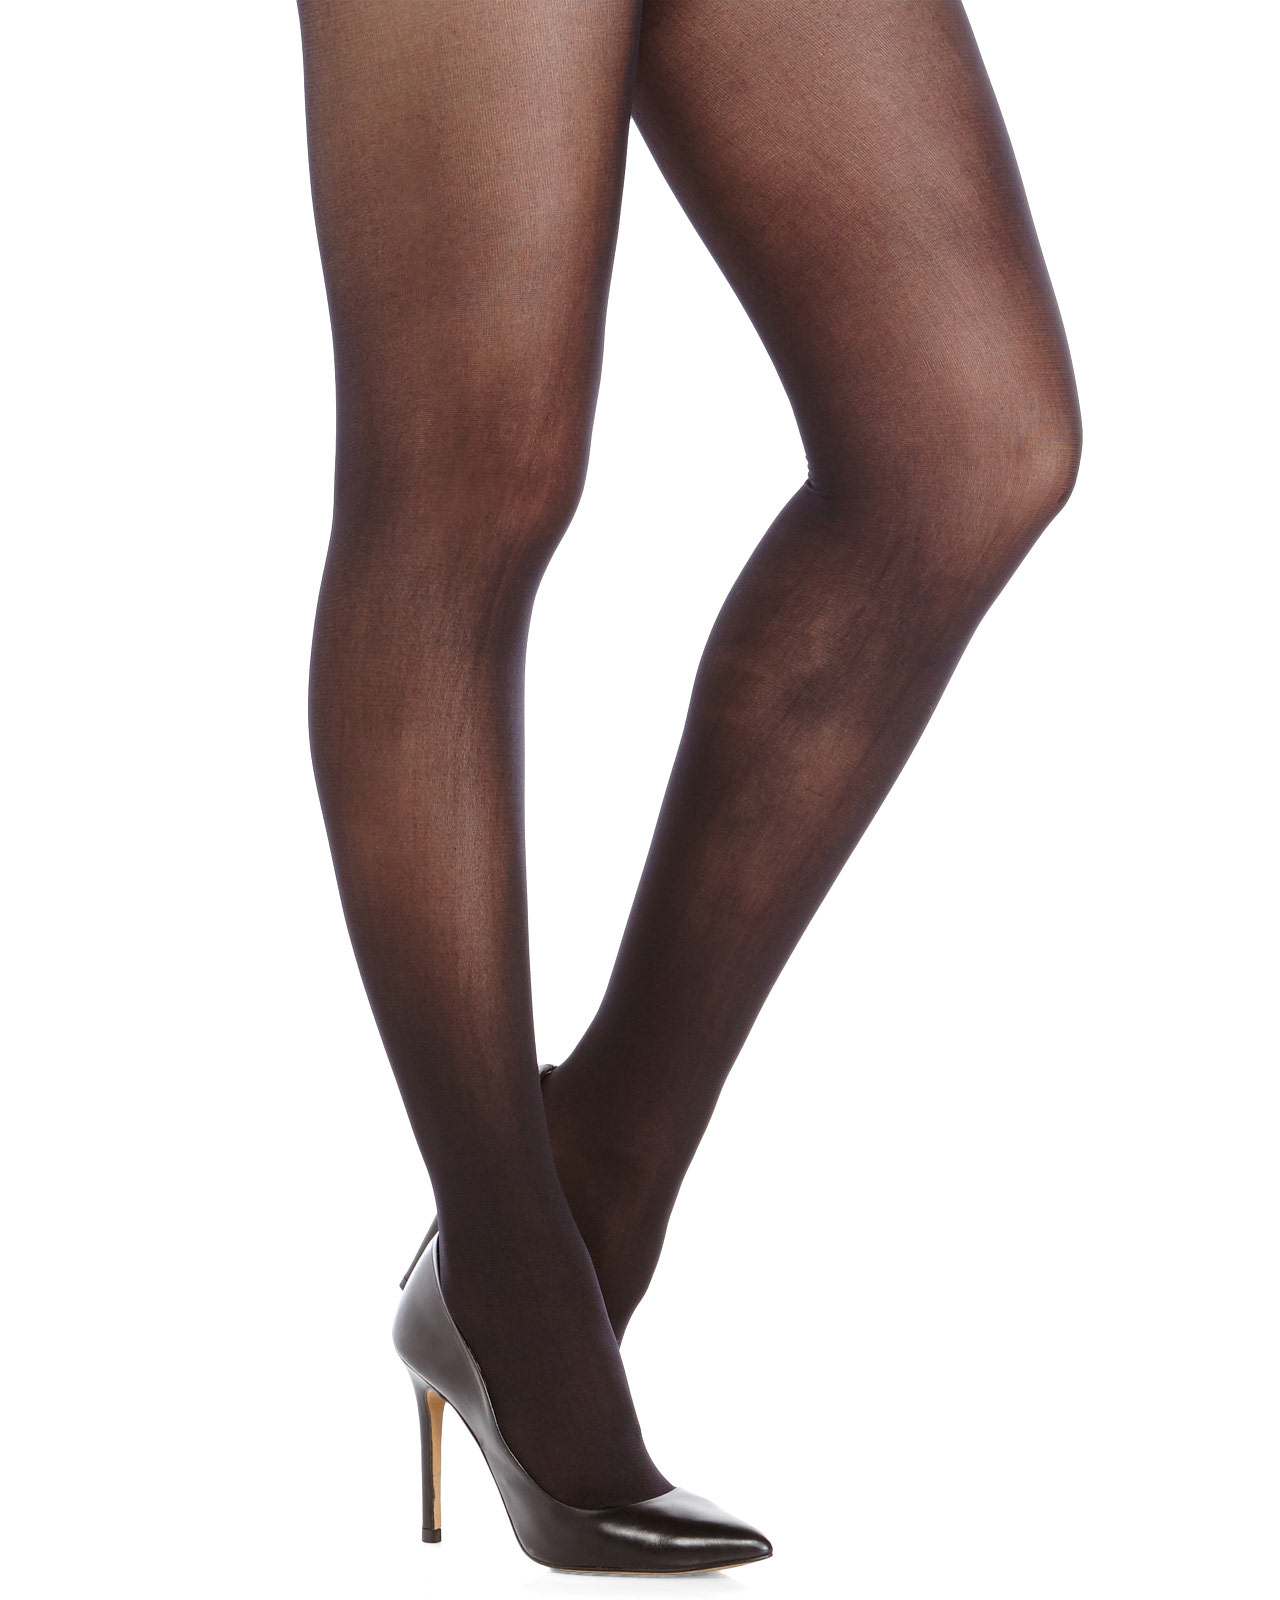 8ea5571a5ee13 Anne Klein Two-Pack Black Solid & Paisley Tights in Black - Lyst